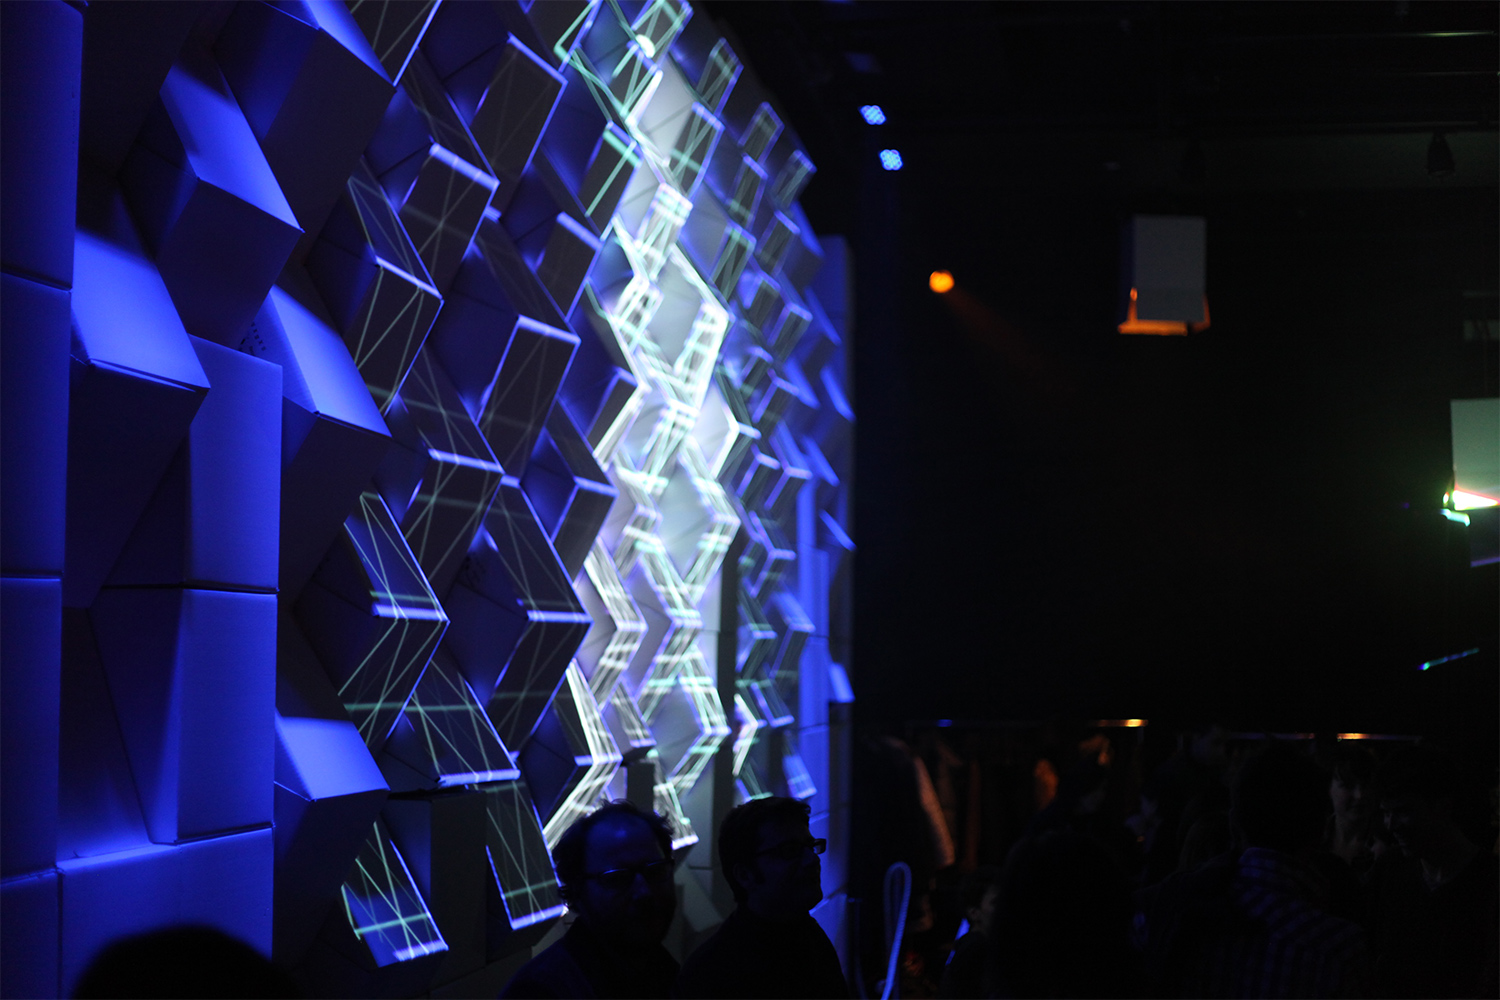 Installation of a wall of cardboard boxes at an angle. Multimedia projection (mapping) on the edges of the cubes. Blue and white projection video